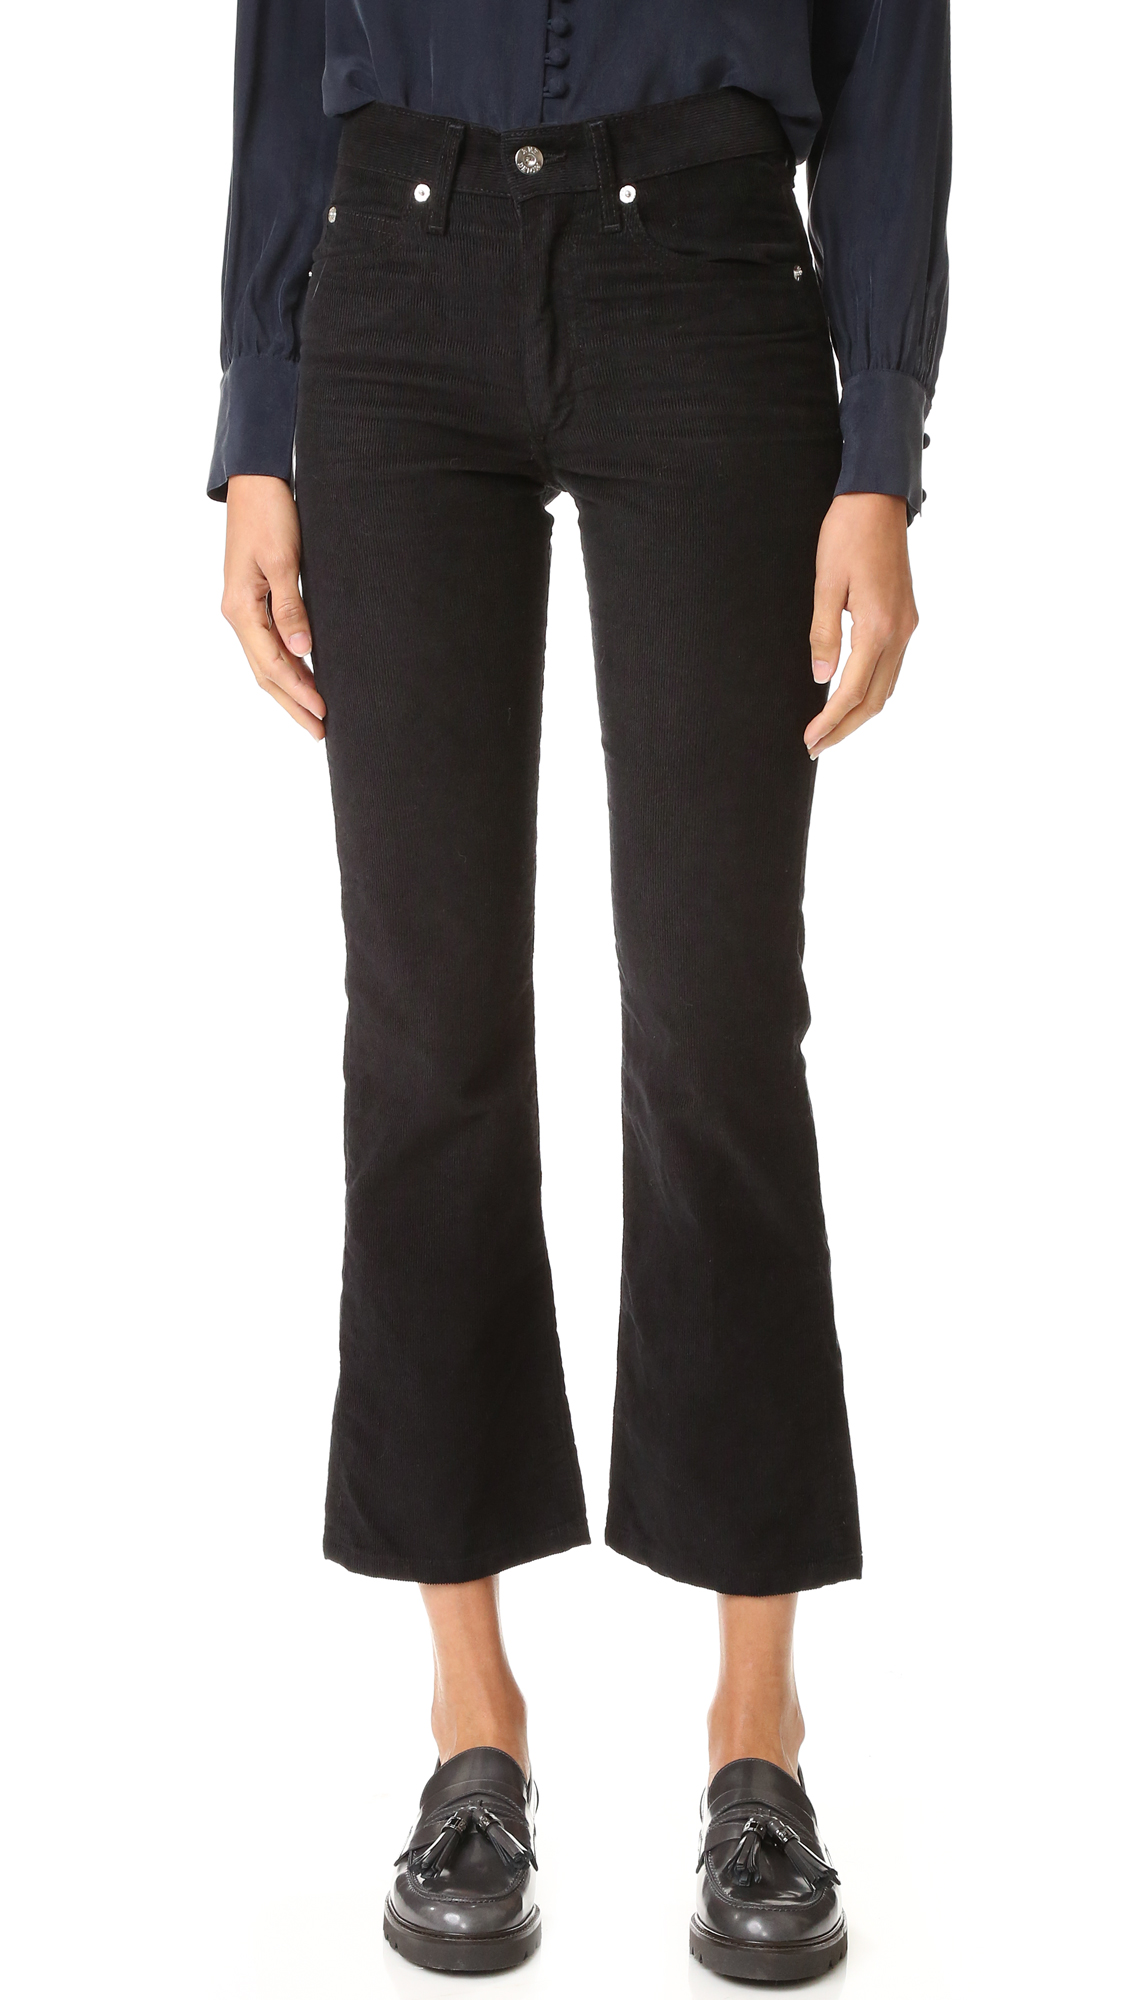 Eve Denim corduroy pants in a high rise profile. 5 pocket styling. Button closure and zip fly. Fabric: Stretch corduroy. 98% cotton/2% lycra spandex. Wash cold. Made in the USA. Measurements Rise: 10.75in / 27cm Inseam: 27.5in / 70cm Leg